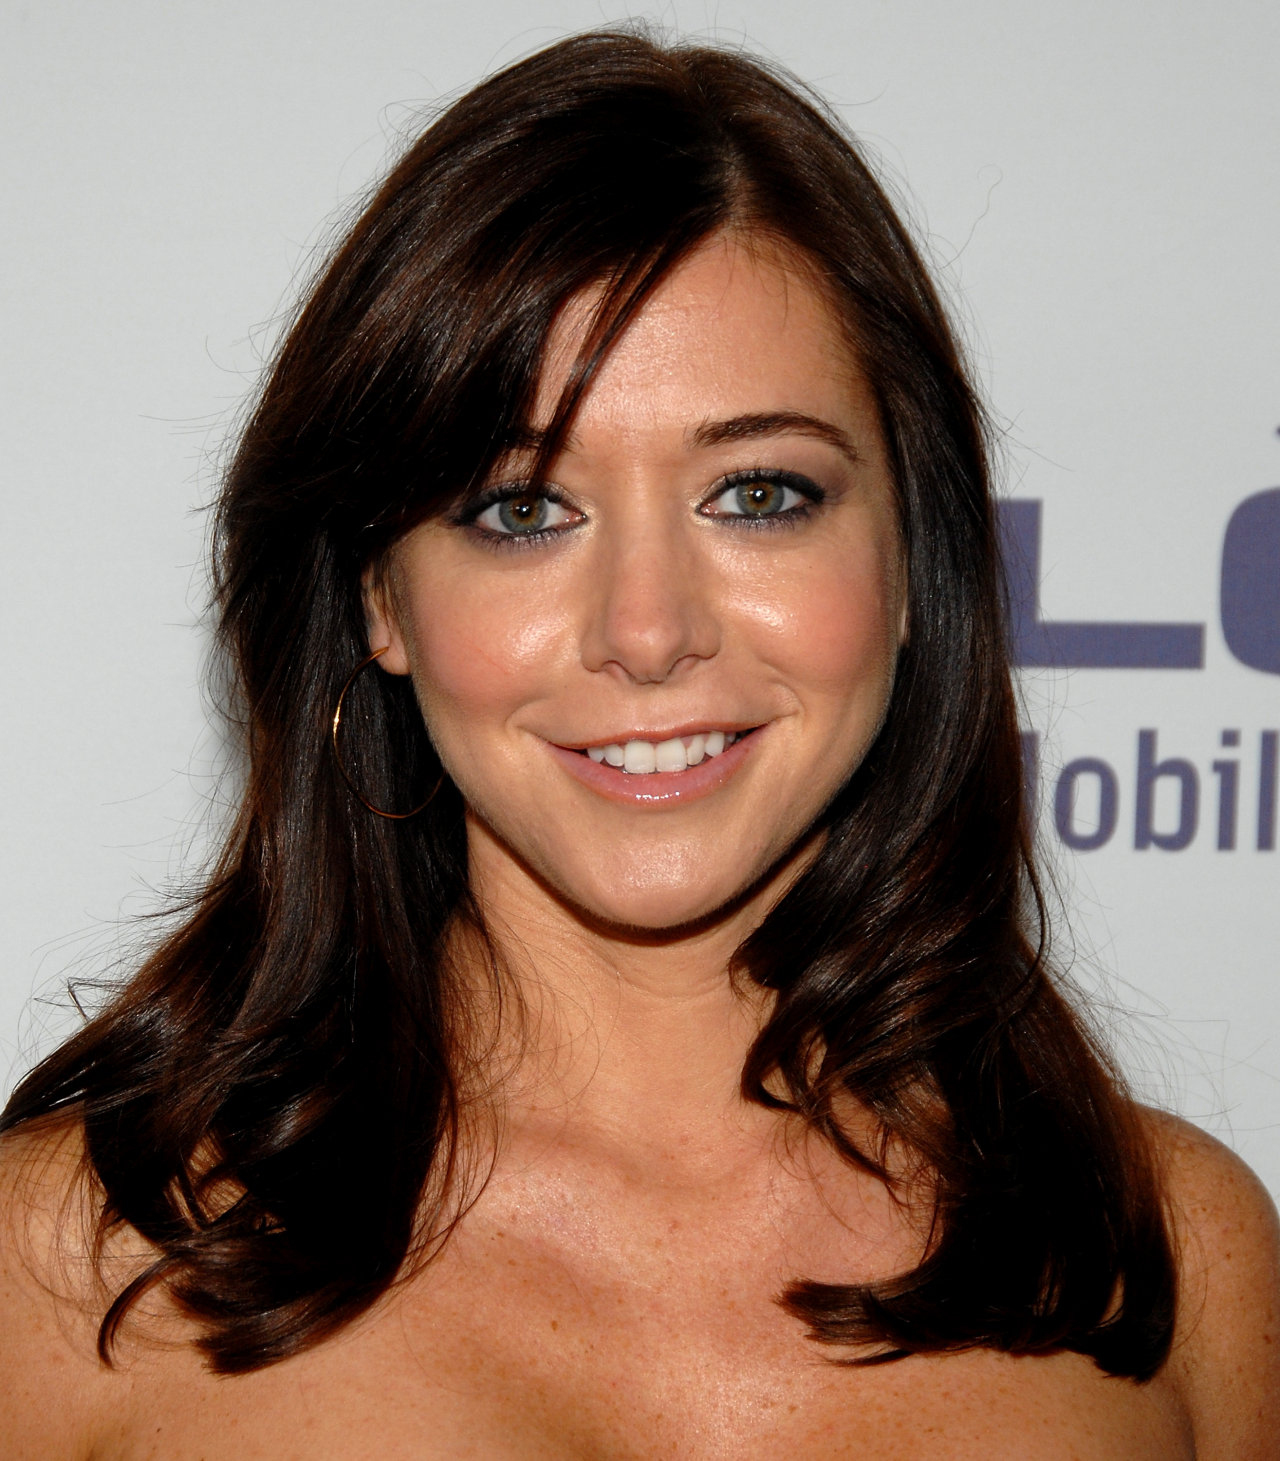 Alyson Hannigan wallpapers  29673 Alyson Hannigan